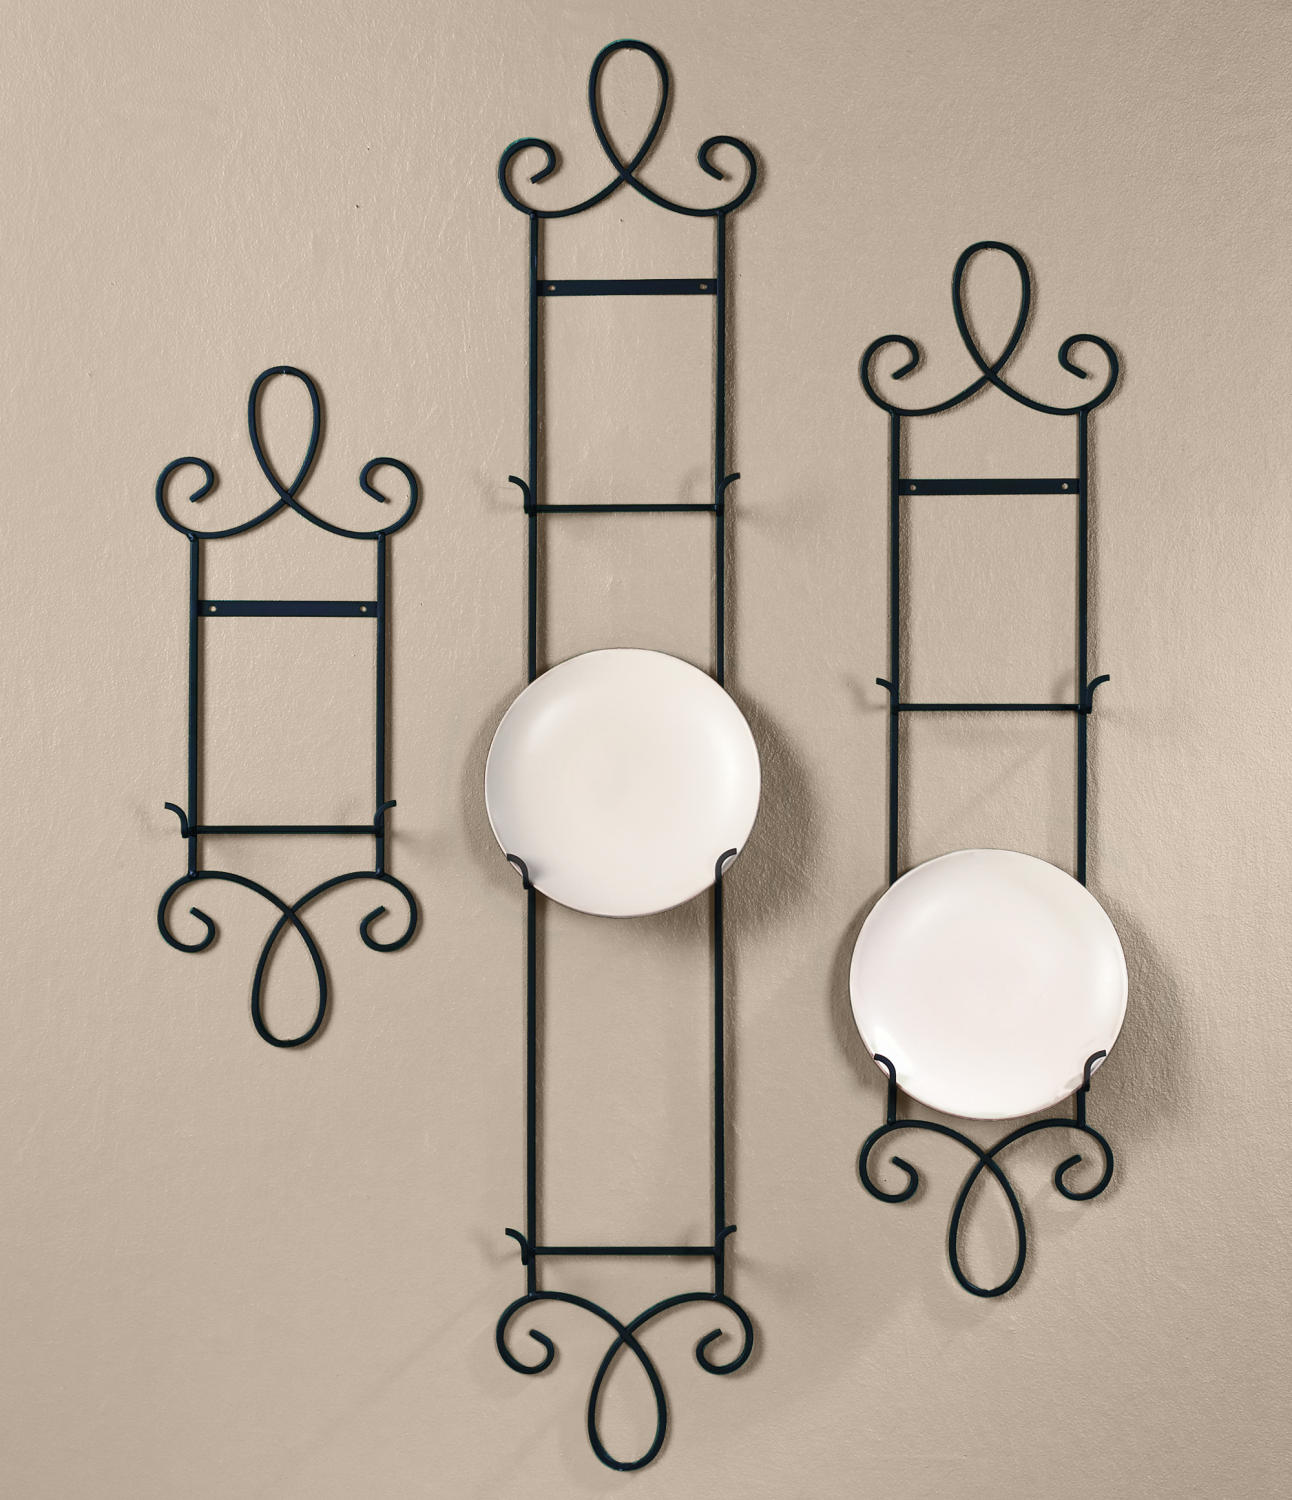 Decorative Metal Plates For Wall Wall Mounted Decorative Plate Holder Cbaarch  sc 1 st  Wall Plate Design & Decorative Metal Plates For Wall | Wall Plate Design Ideas